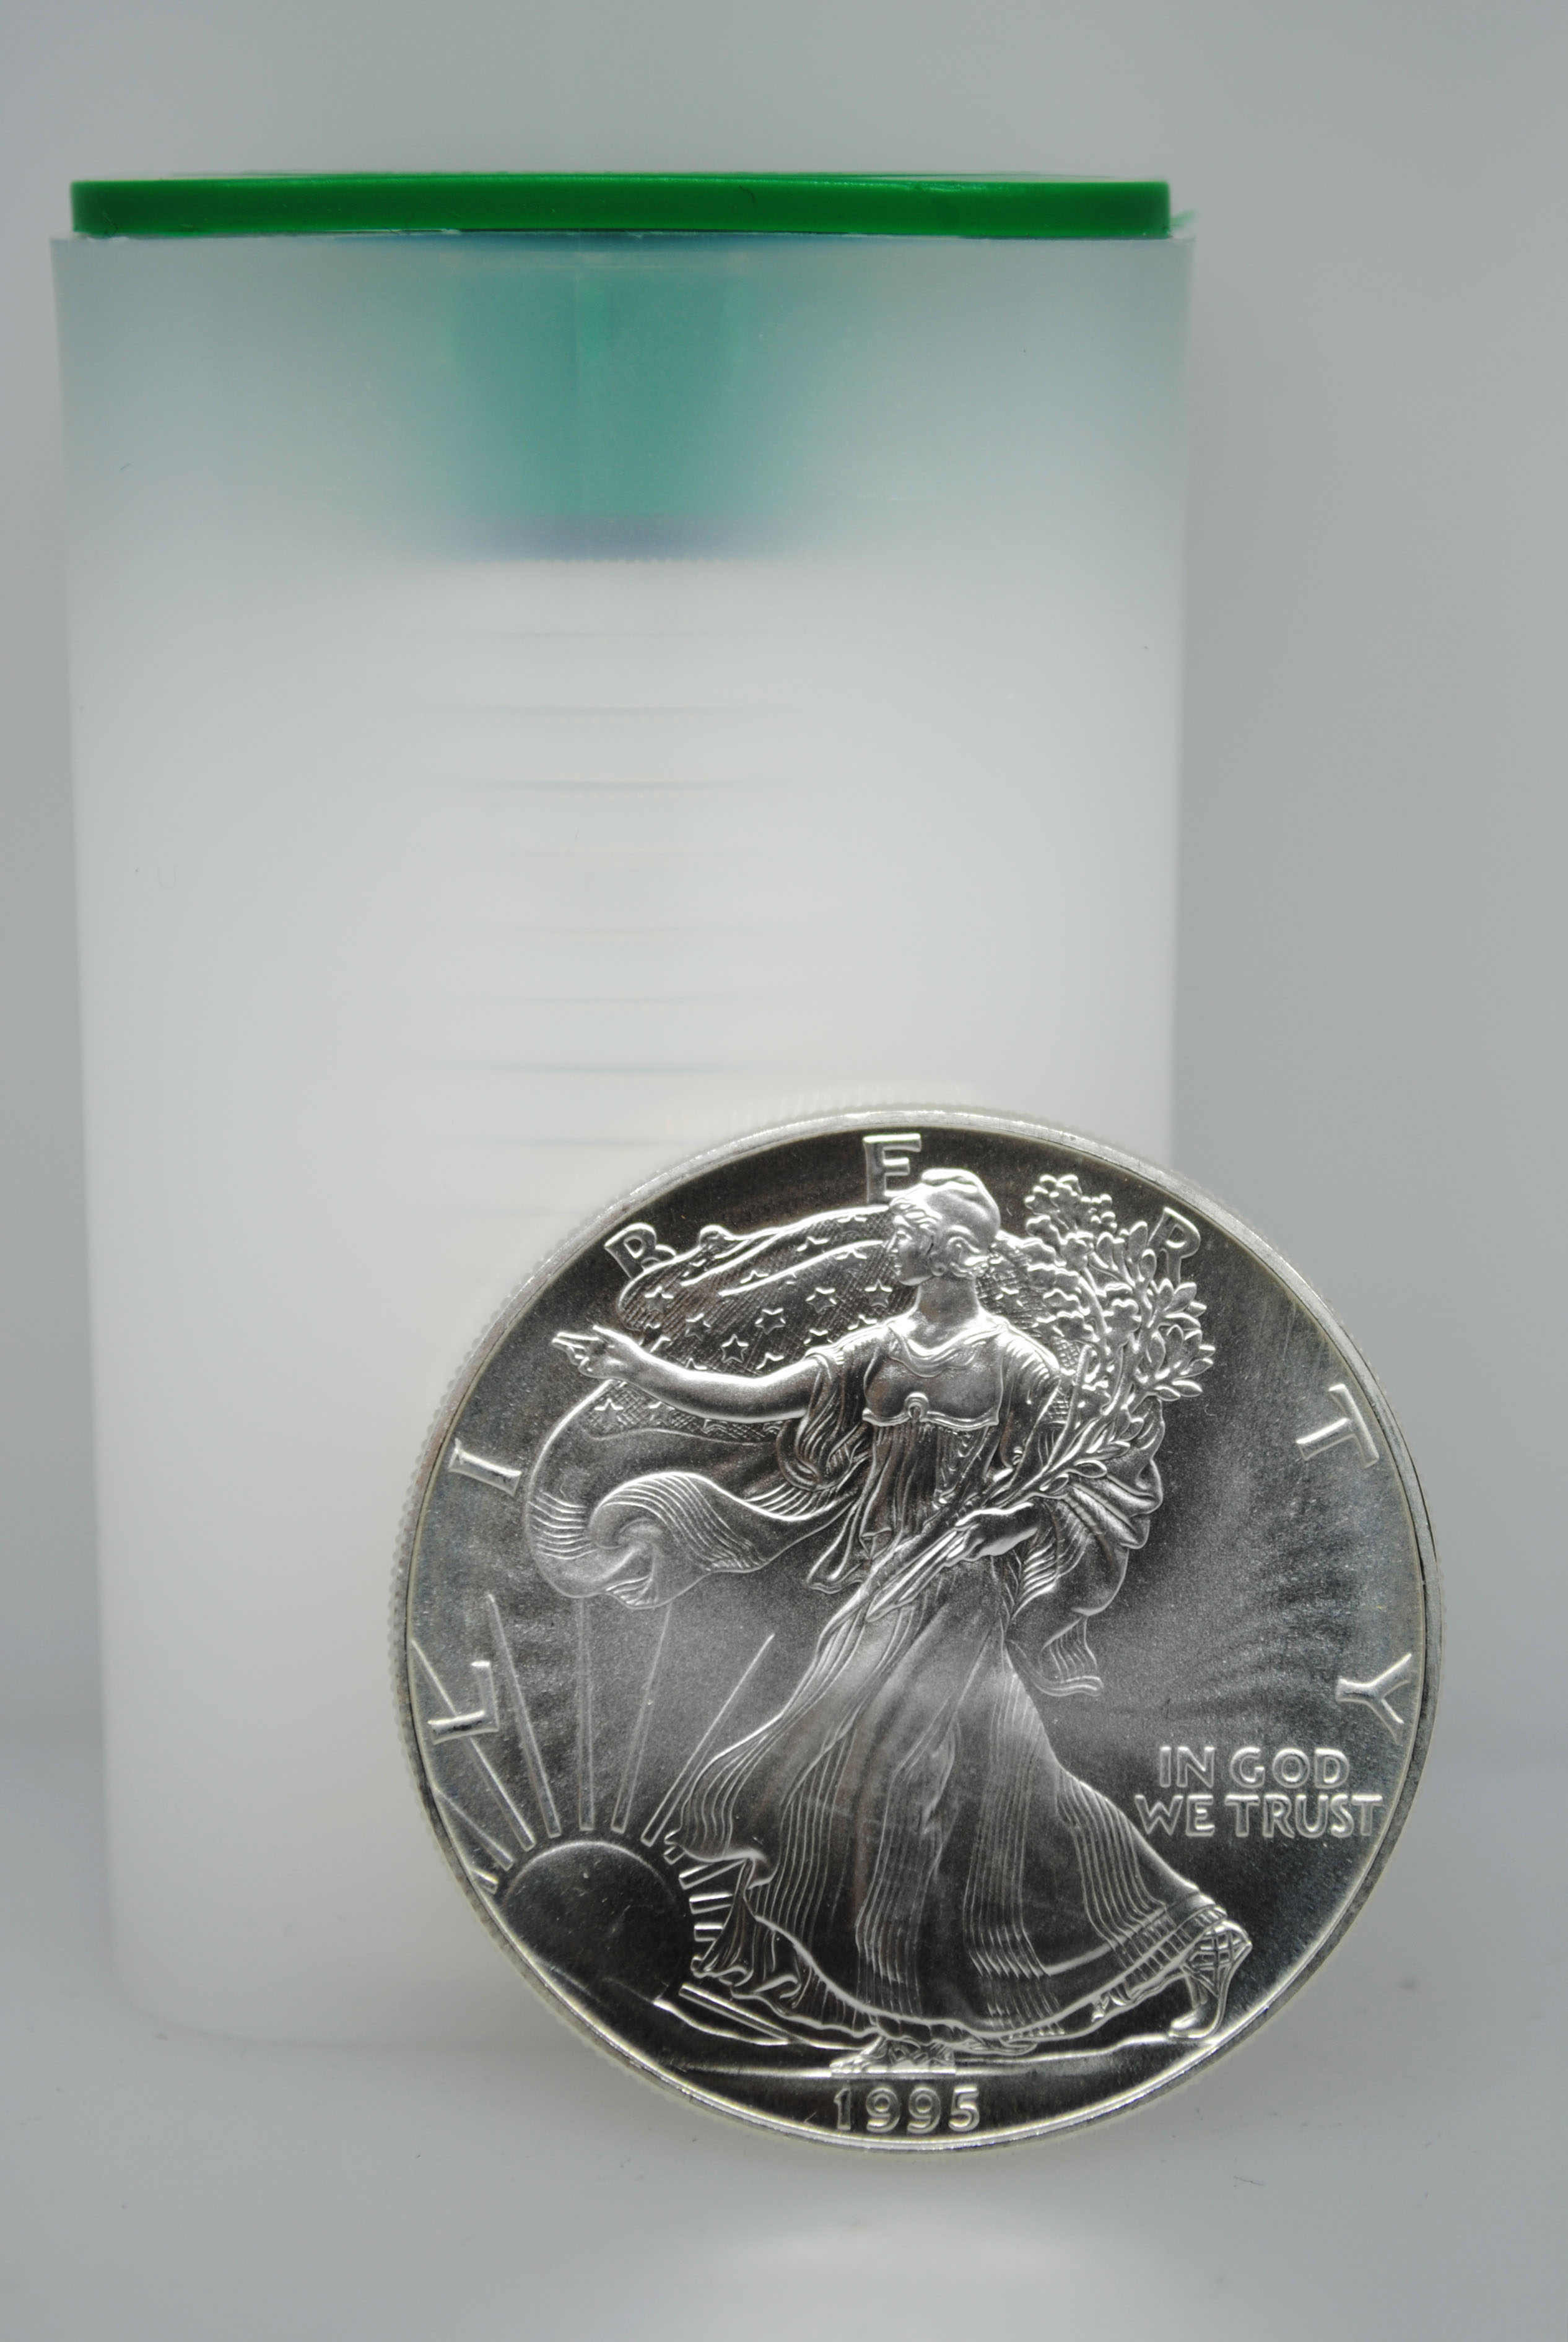 1995 Uncirculated Silver Eagles